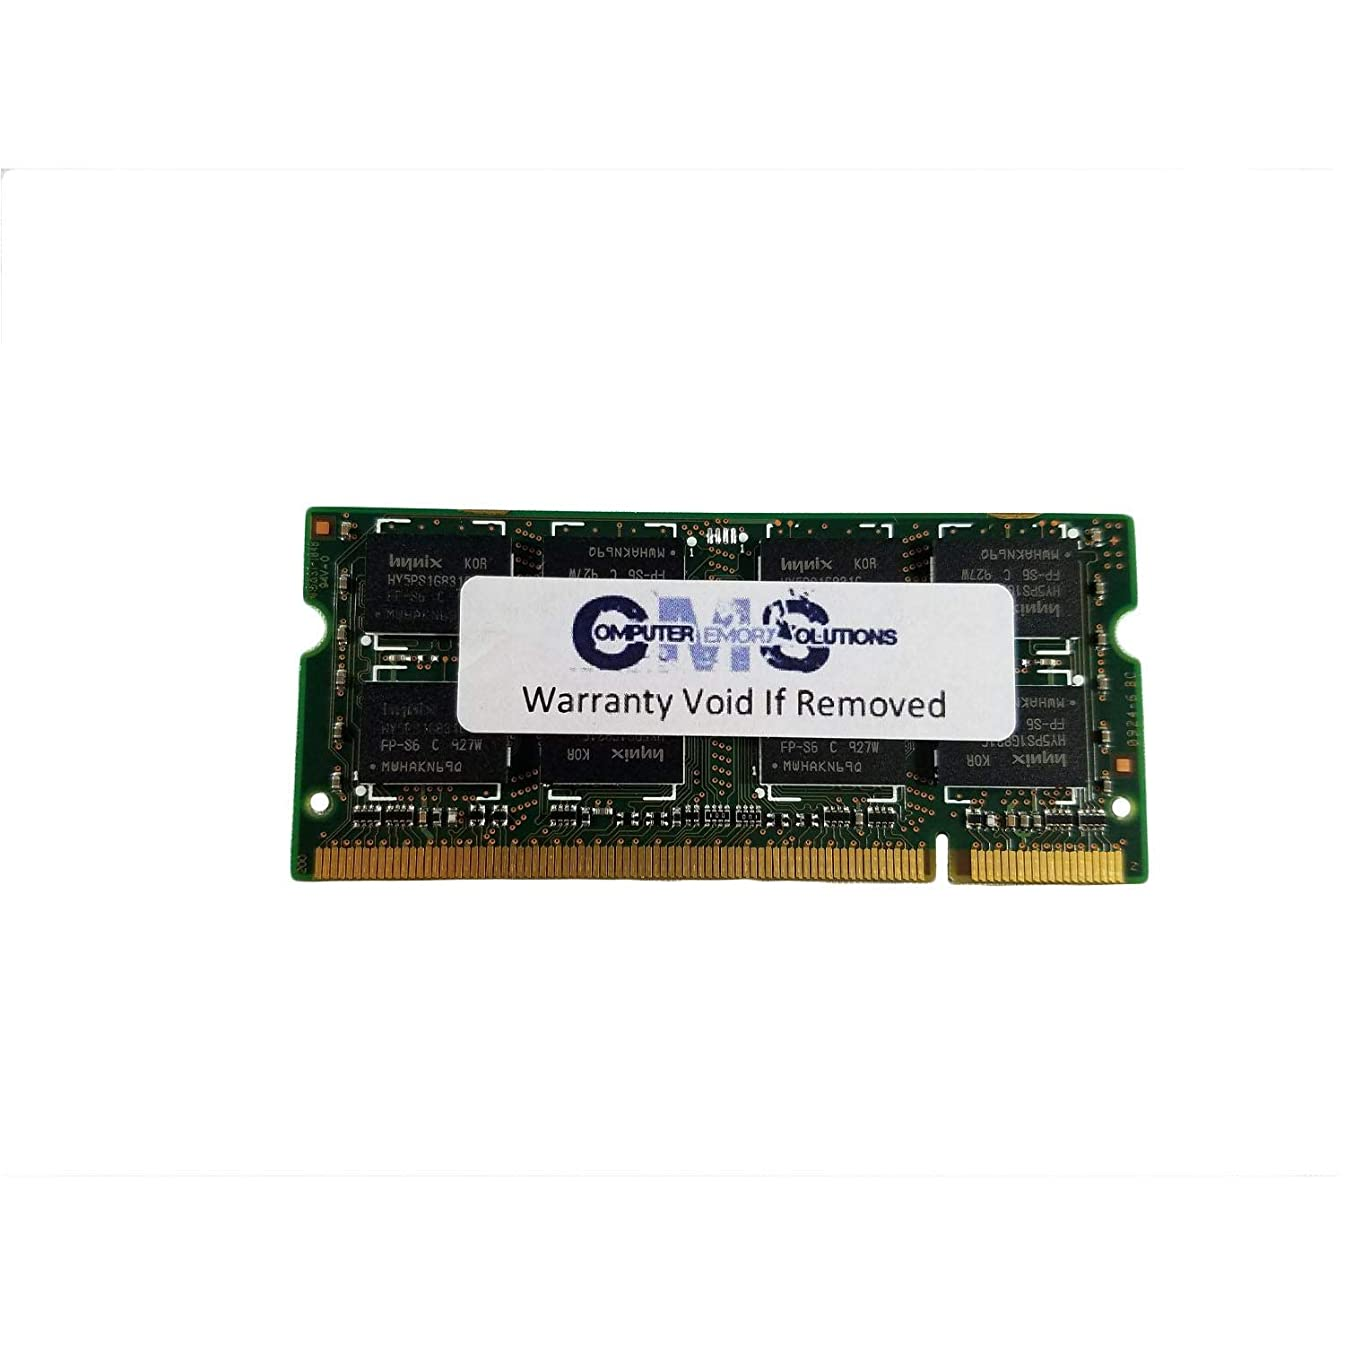 4Gb (1X4Gb) Memory Ram Compatible with Hp/Compaq Elitebook 8530W Mobile Workstation By CMS A42